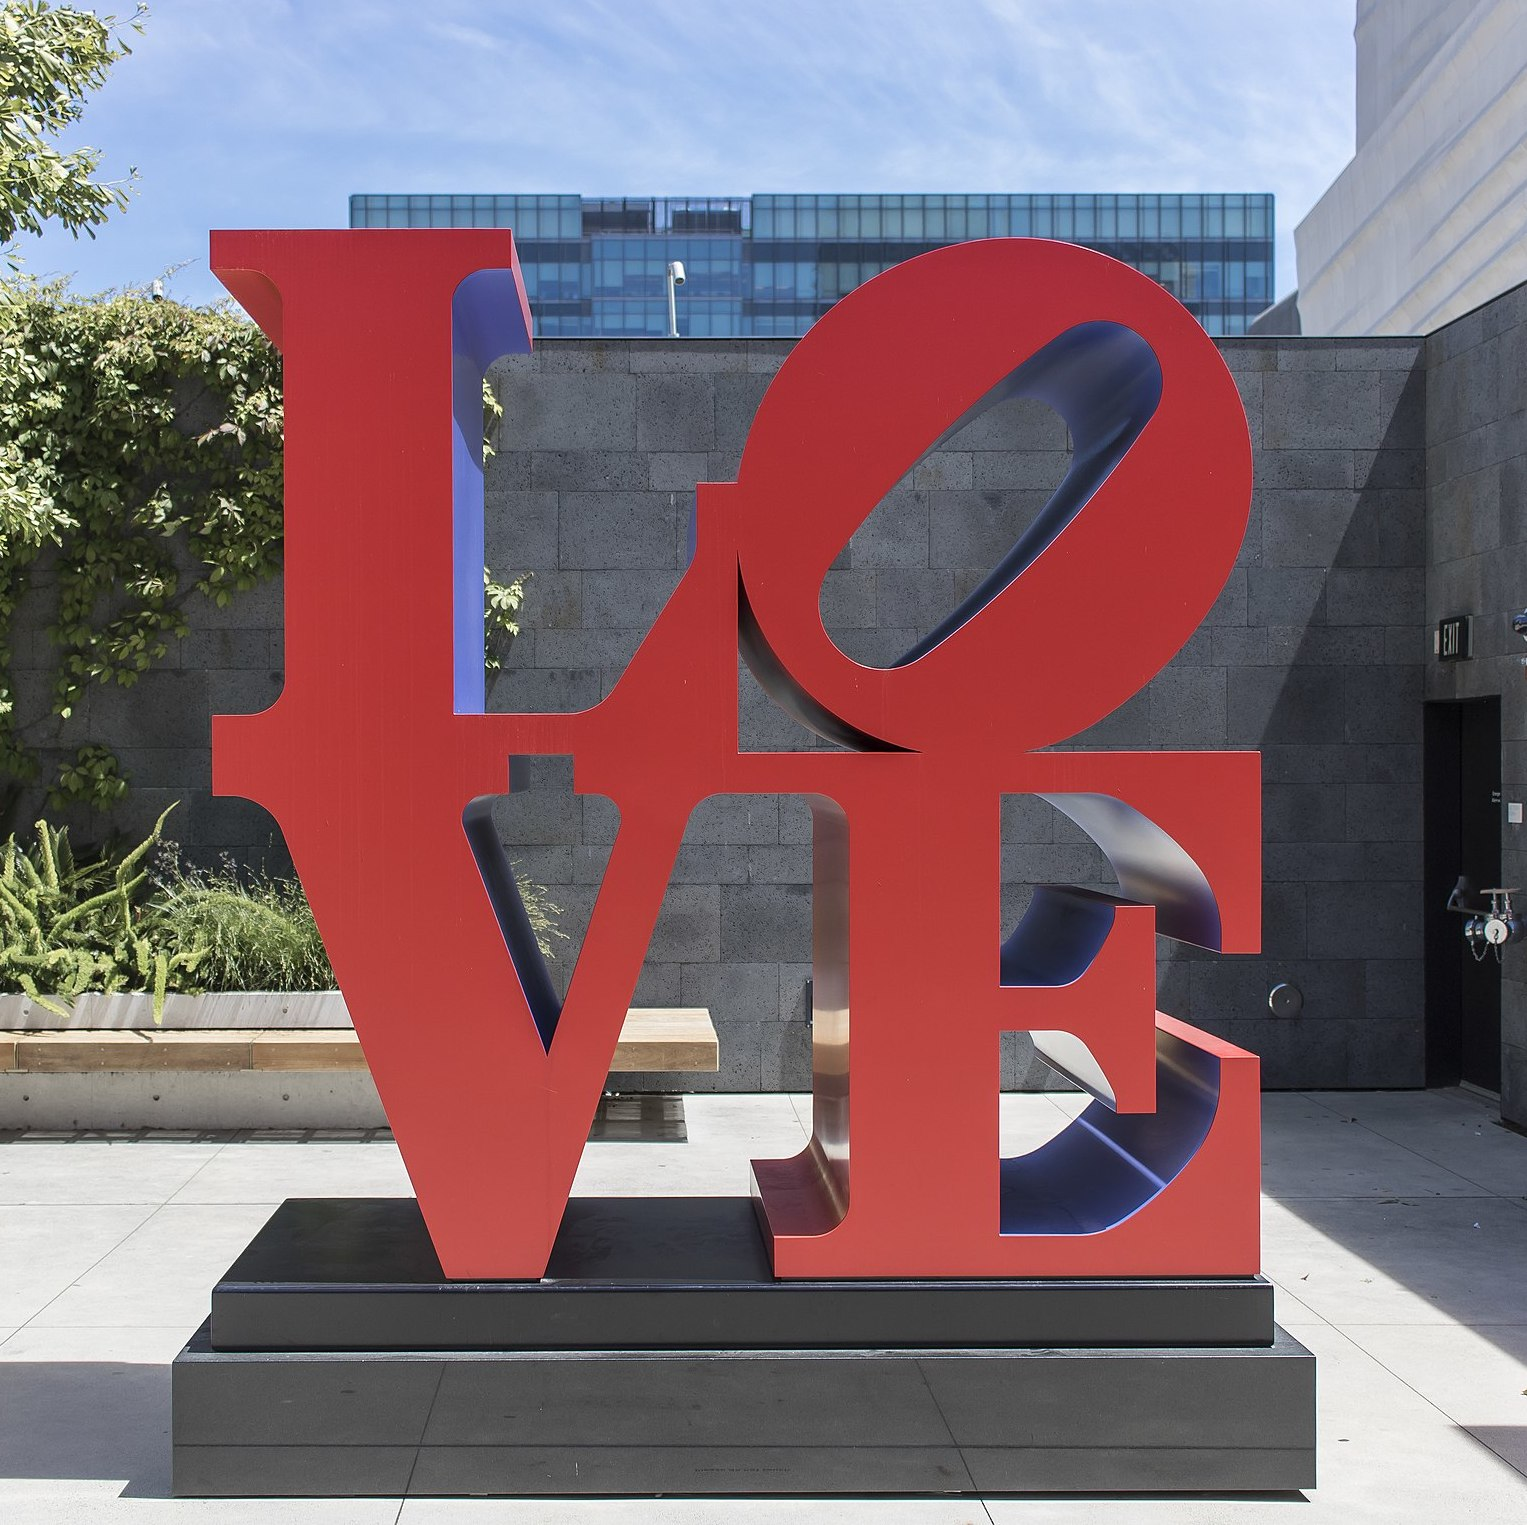 Robert Indiana, Love, 1973, at SFMoMA.